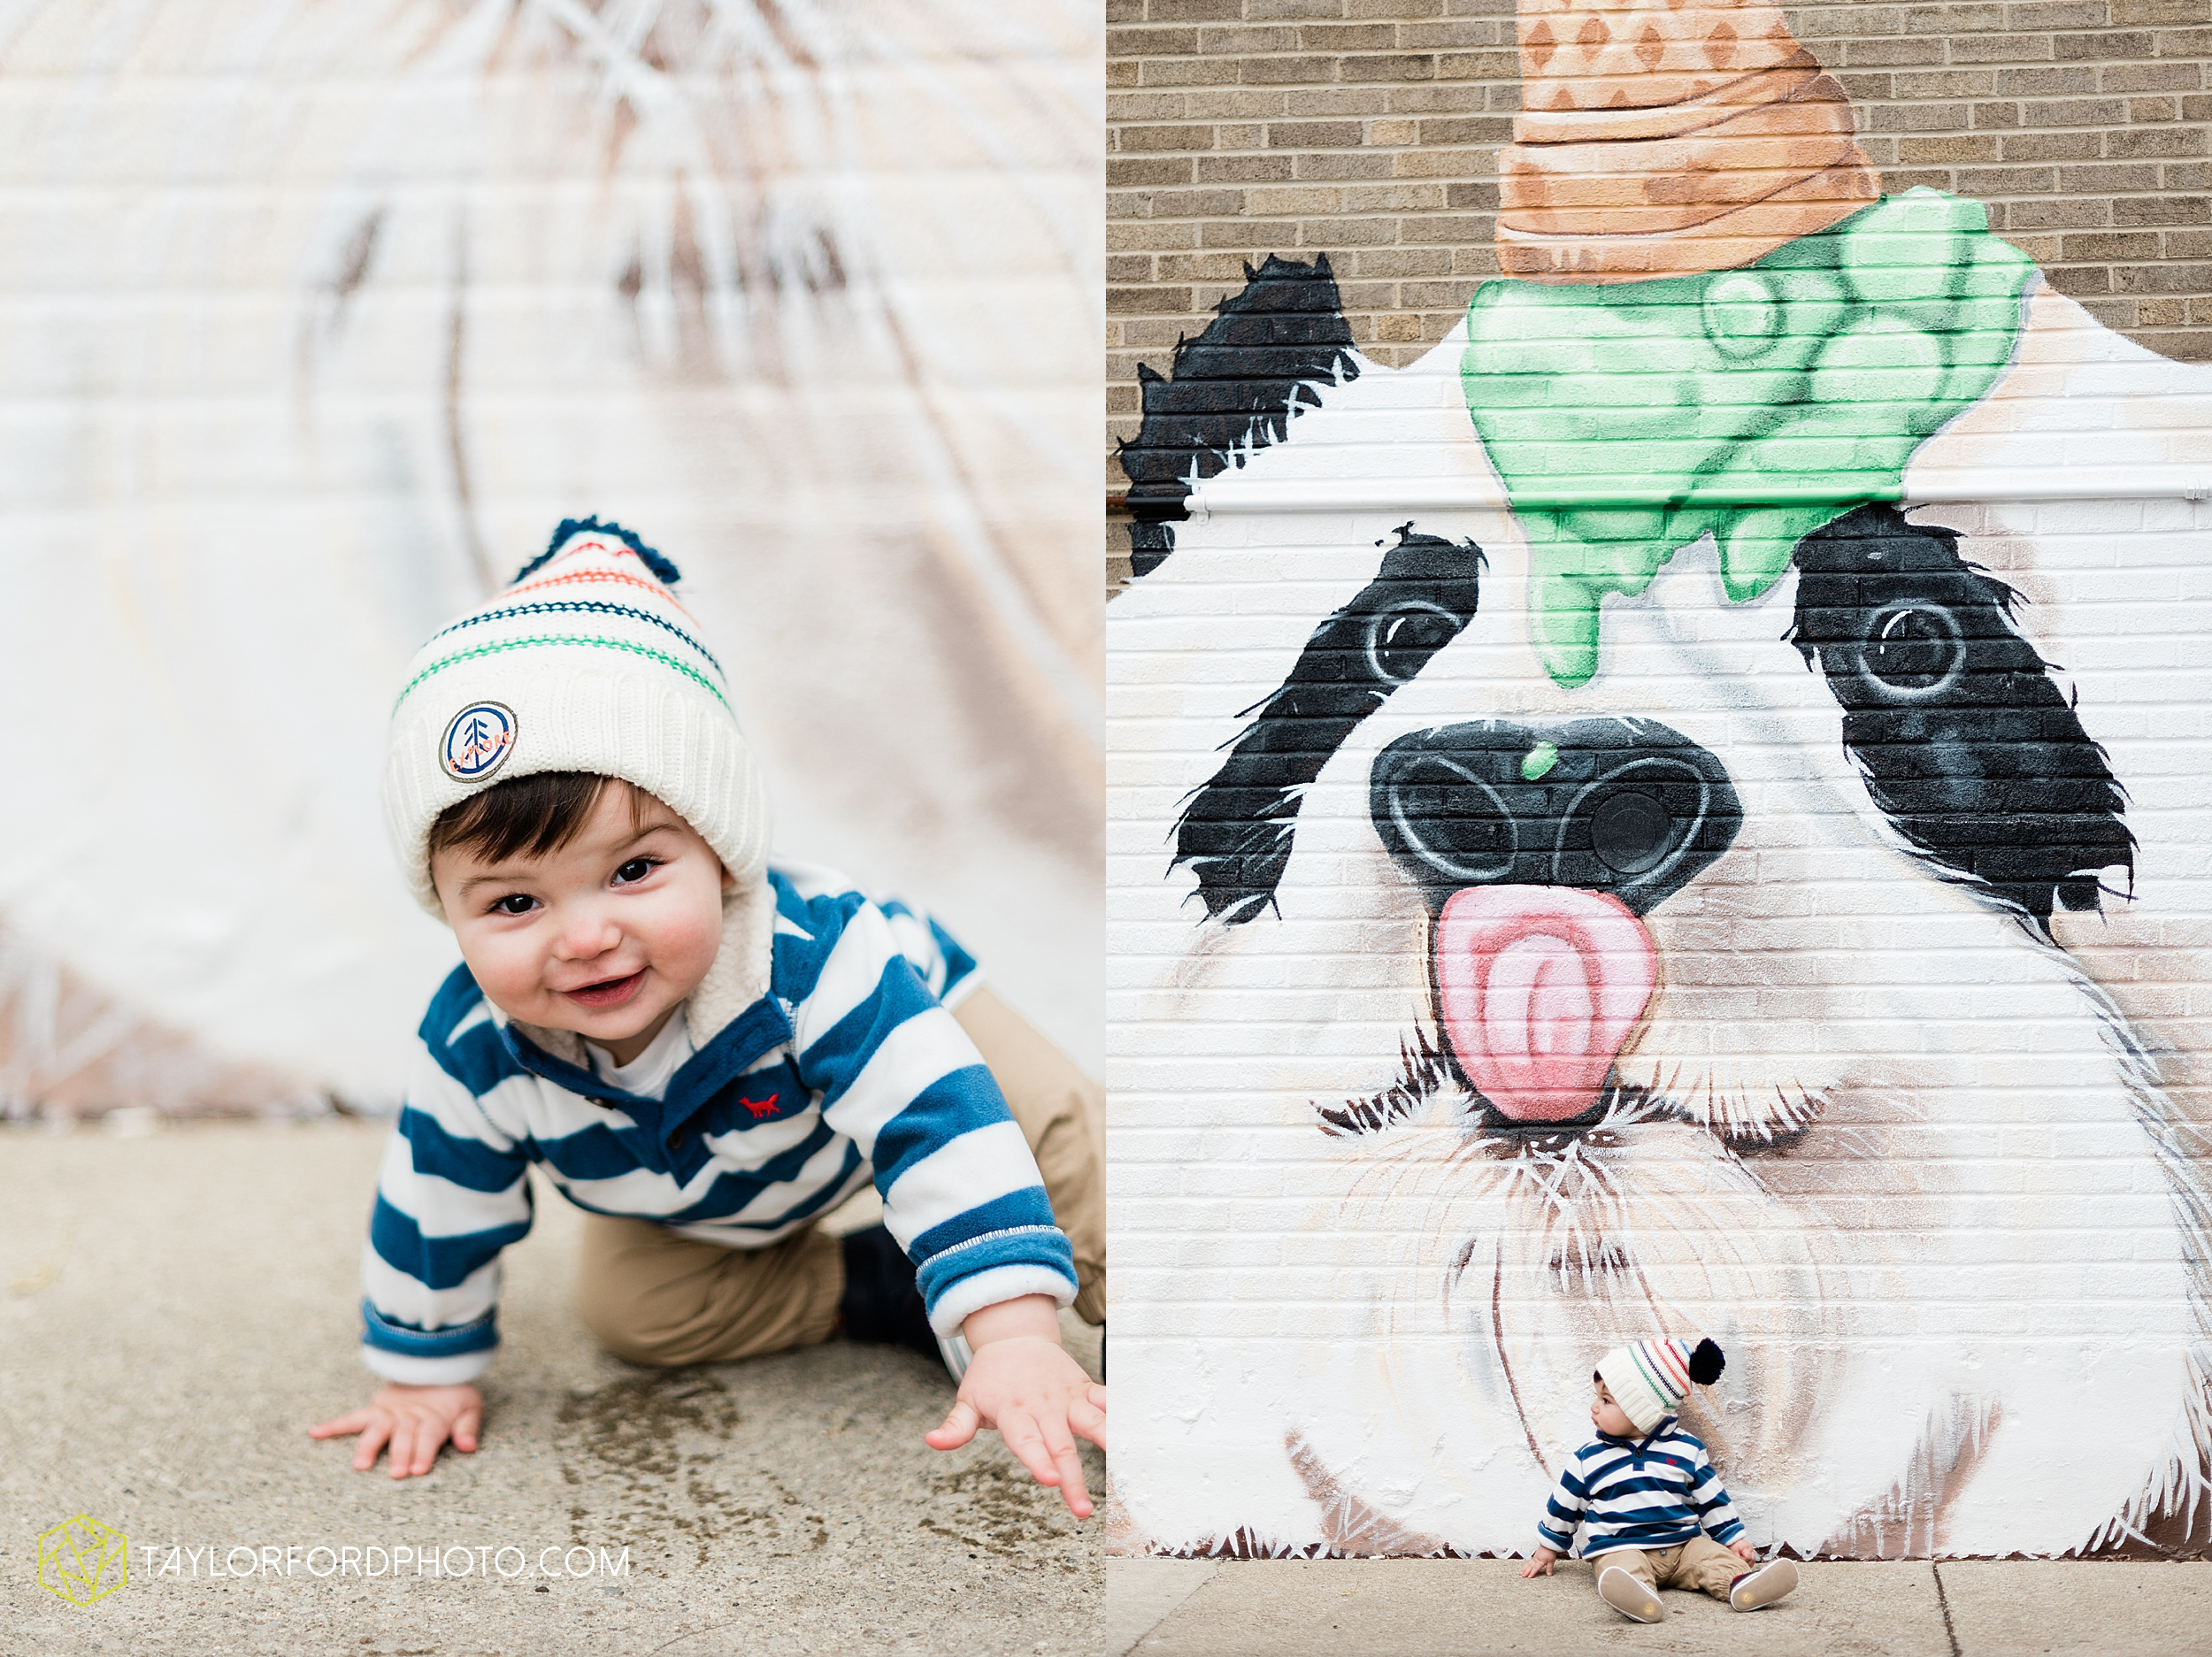 brenna-jose-fort-wayne-indiana-engagement-family-child-downtown-river-greenway-photography-taylor-ford-hirschy-photographer_2299.jpg